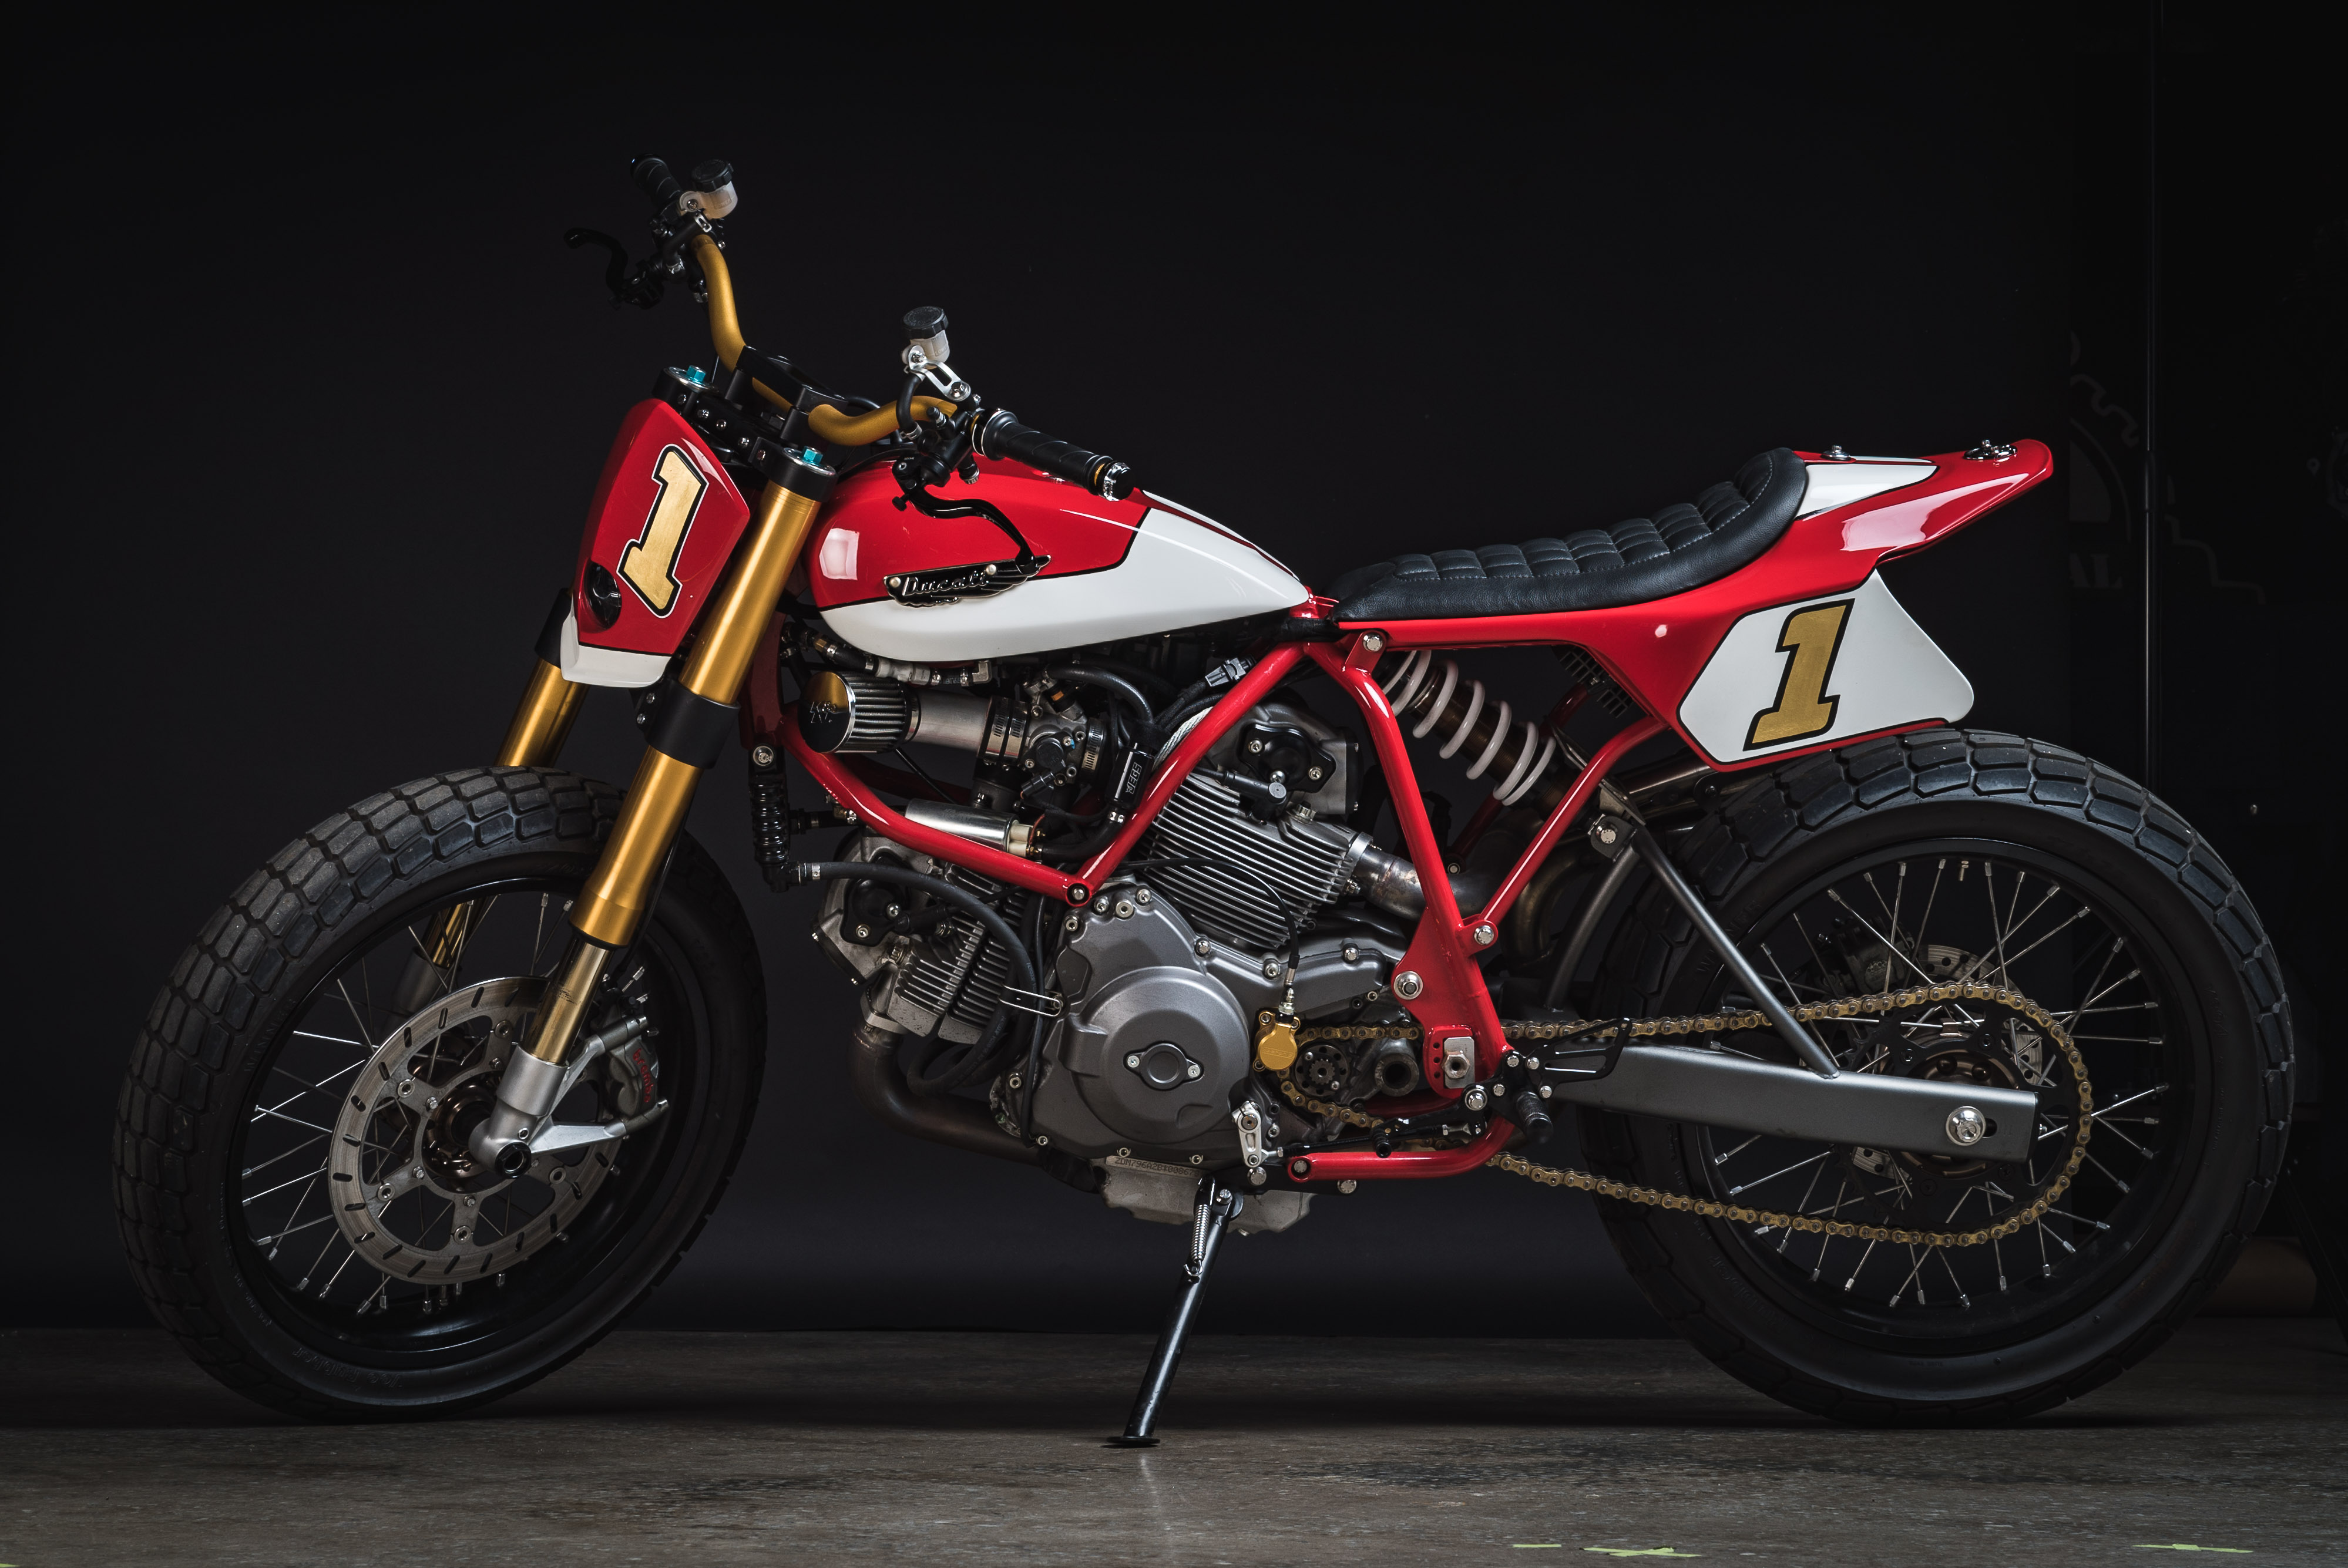 Fuller Moto Ducati Tracker - Dubya USA wheels